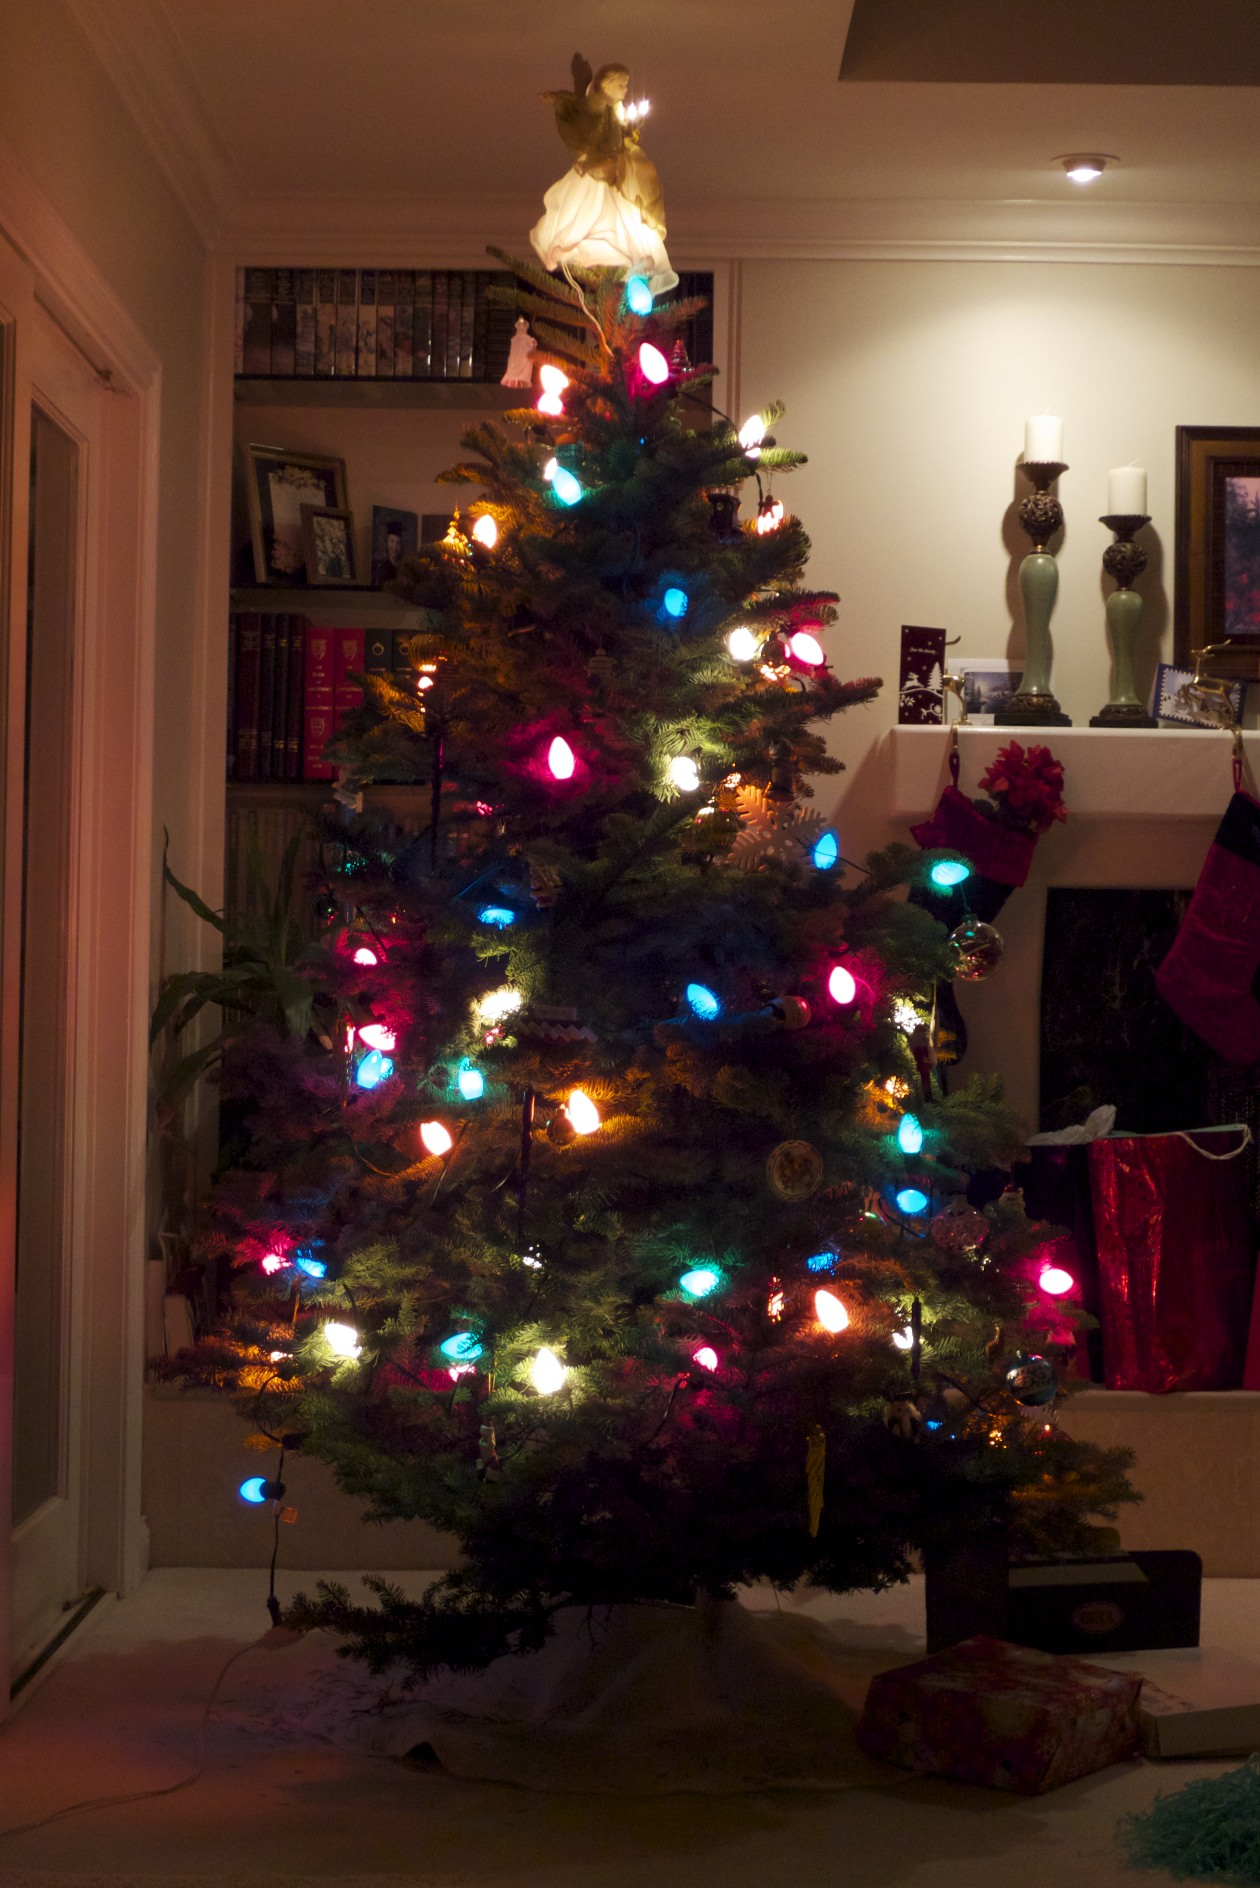 Look at the lights on that Tannenbaum.